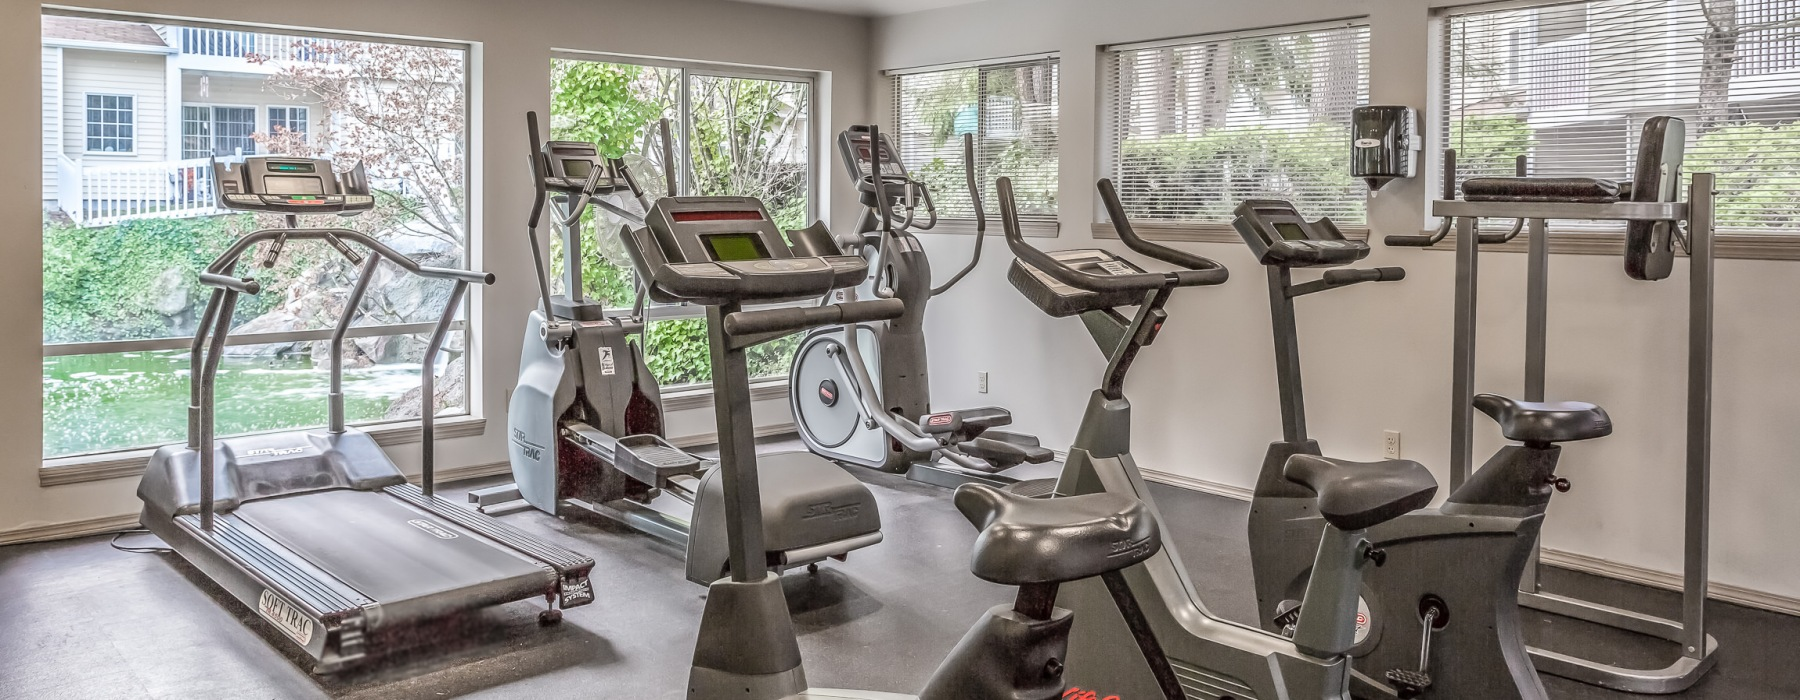 Fitness center with cardio machines facing a window